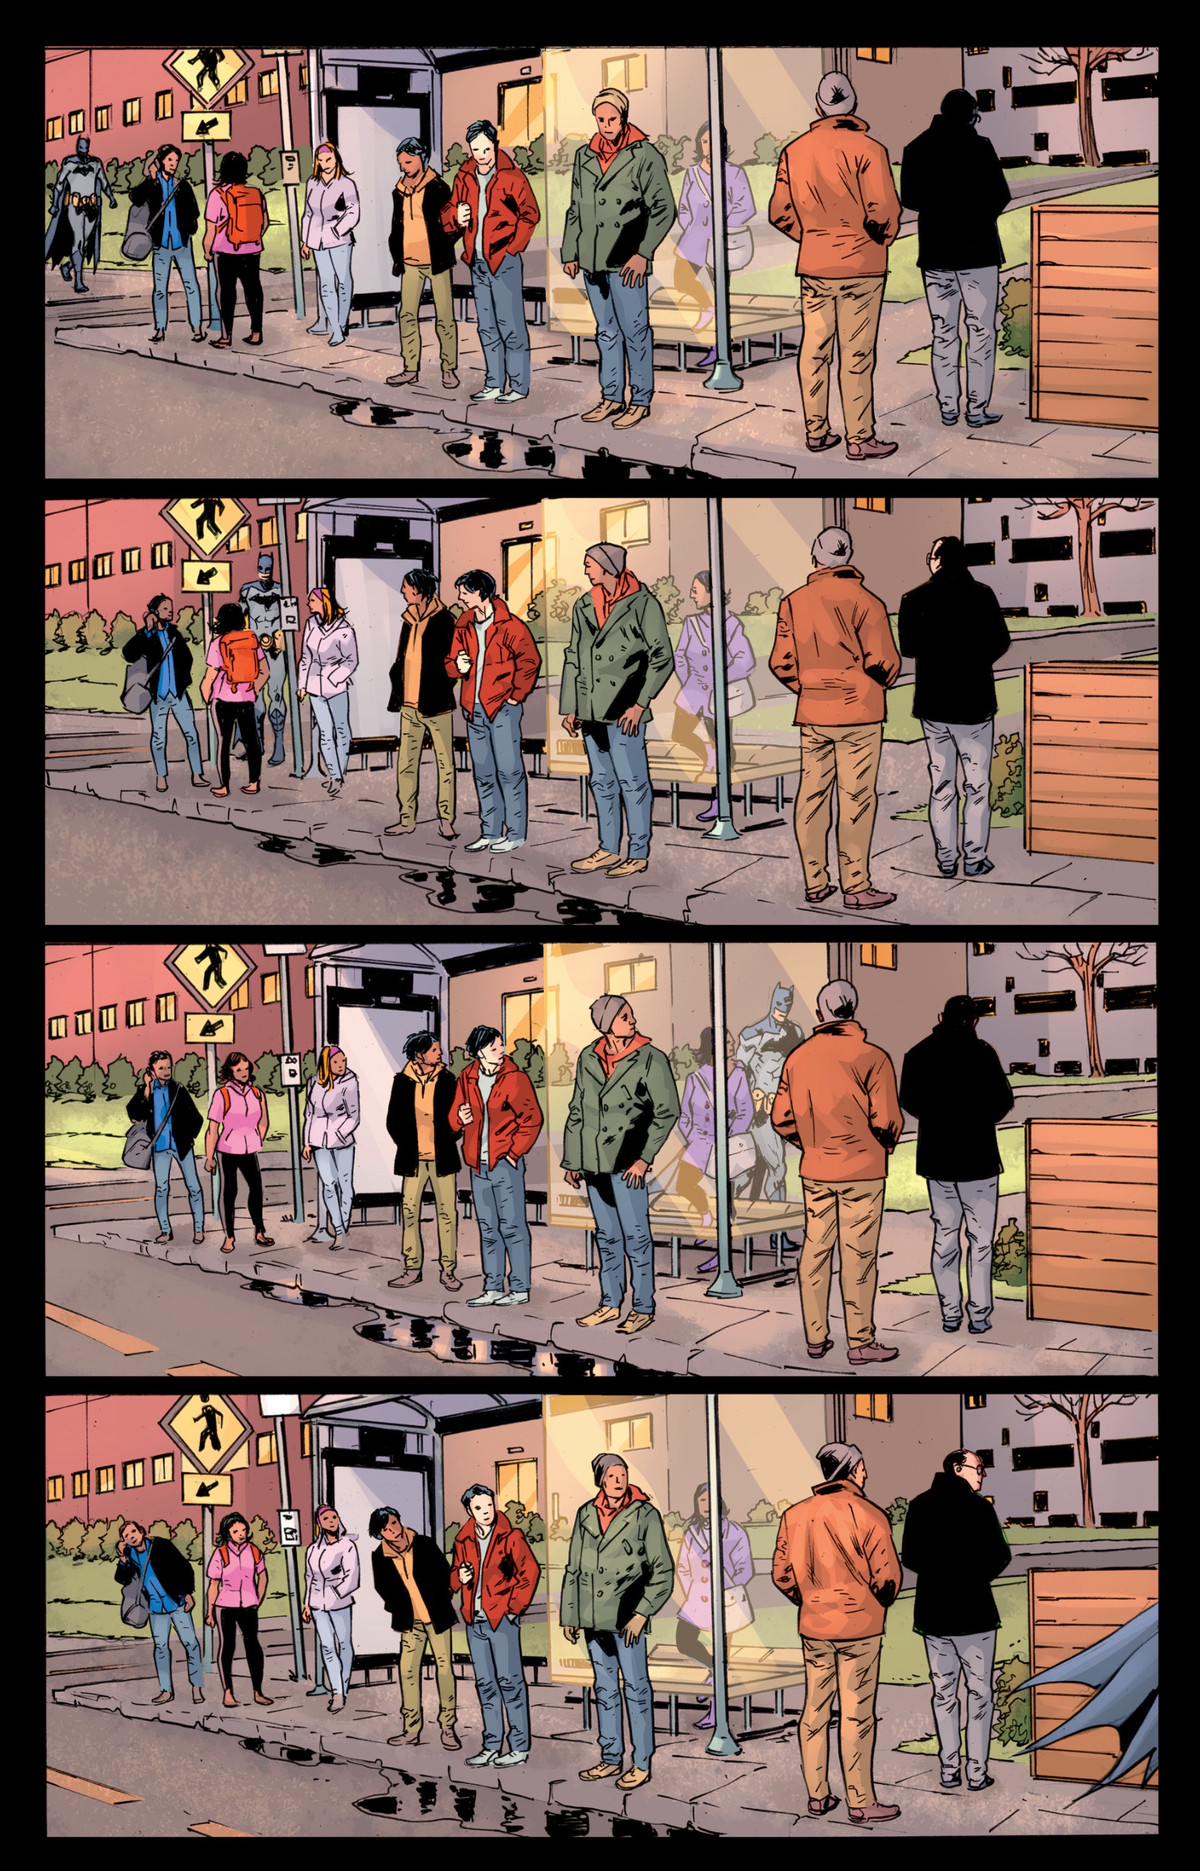 Batman down a street in the early morning, past a crowd of half a dozen puzzled people waiting at a bus stop, in The Batman's Grave #7, DC Comics (2020).